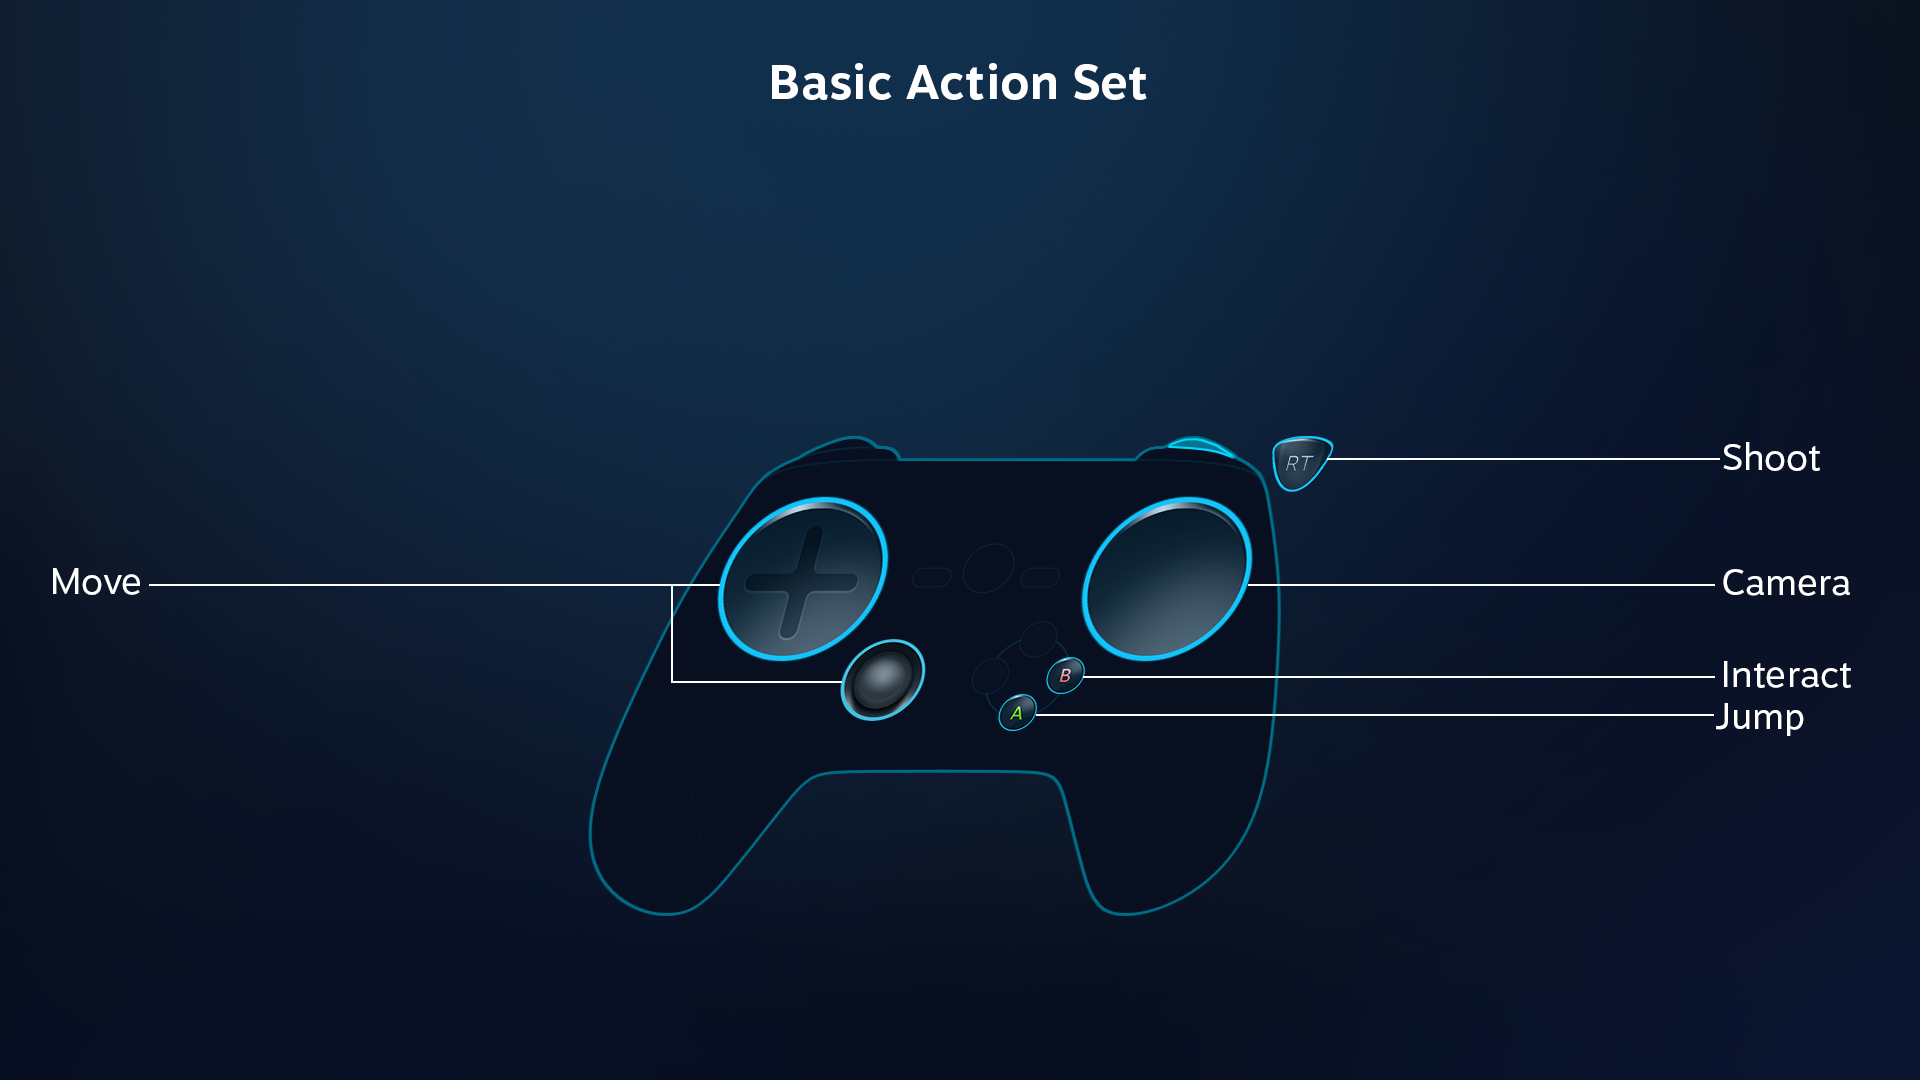 action_set_layers_basic_1.png